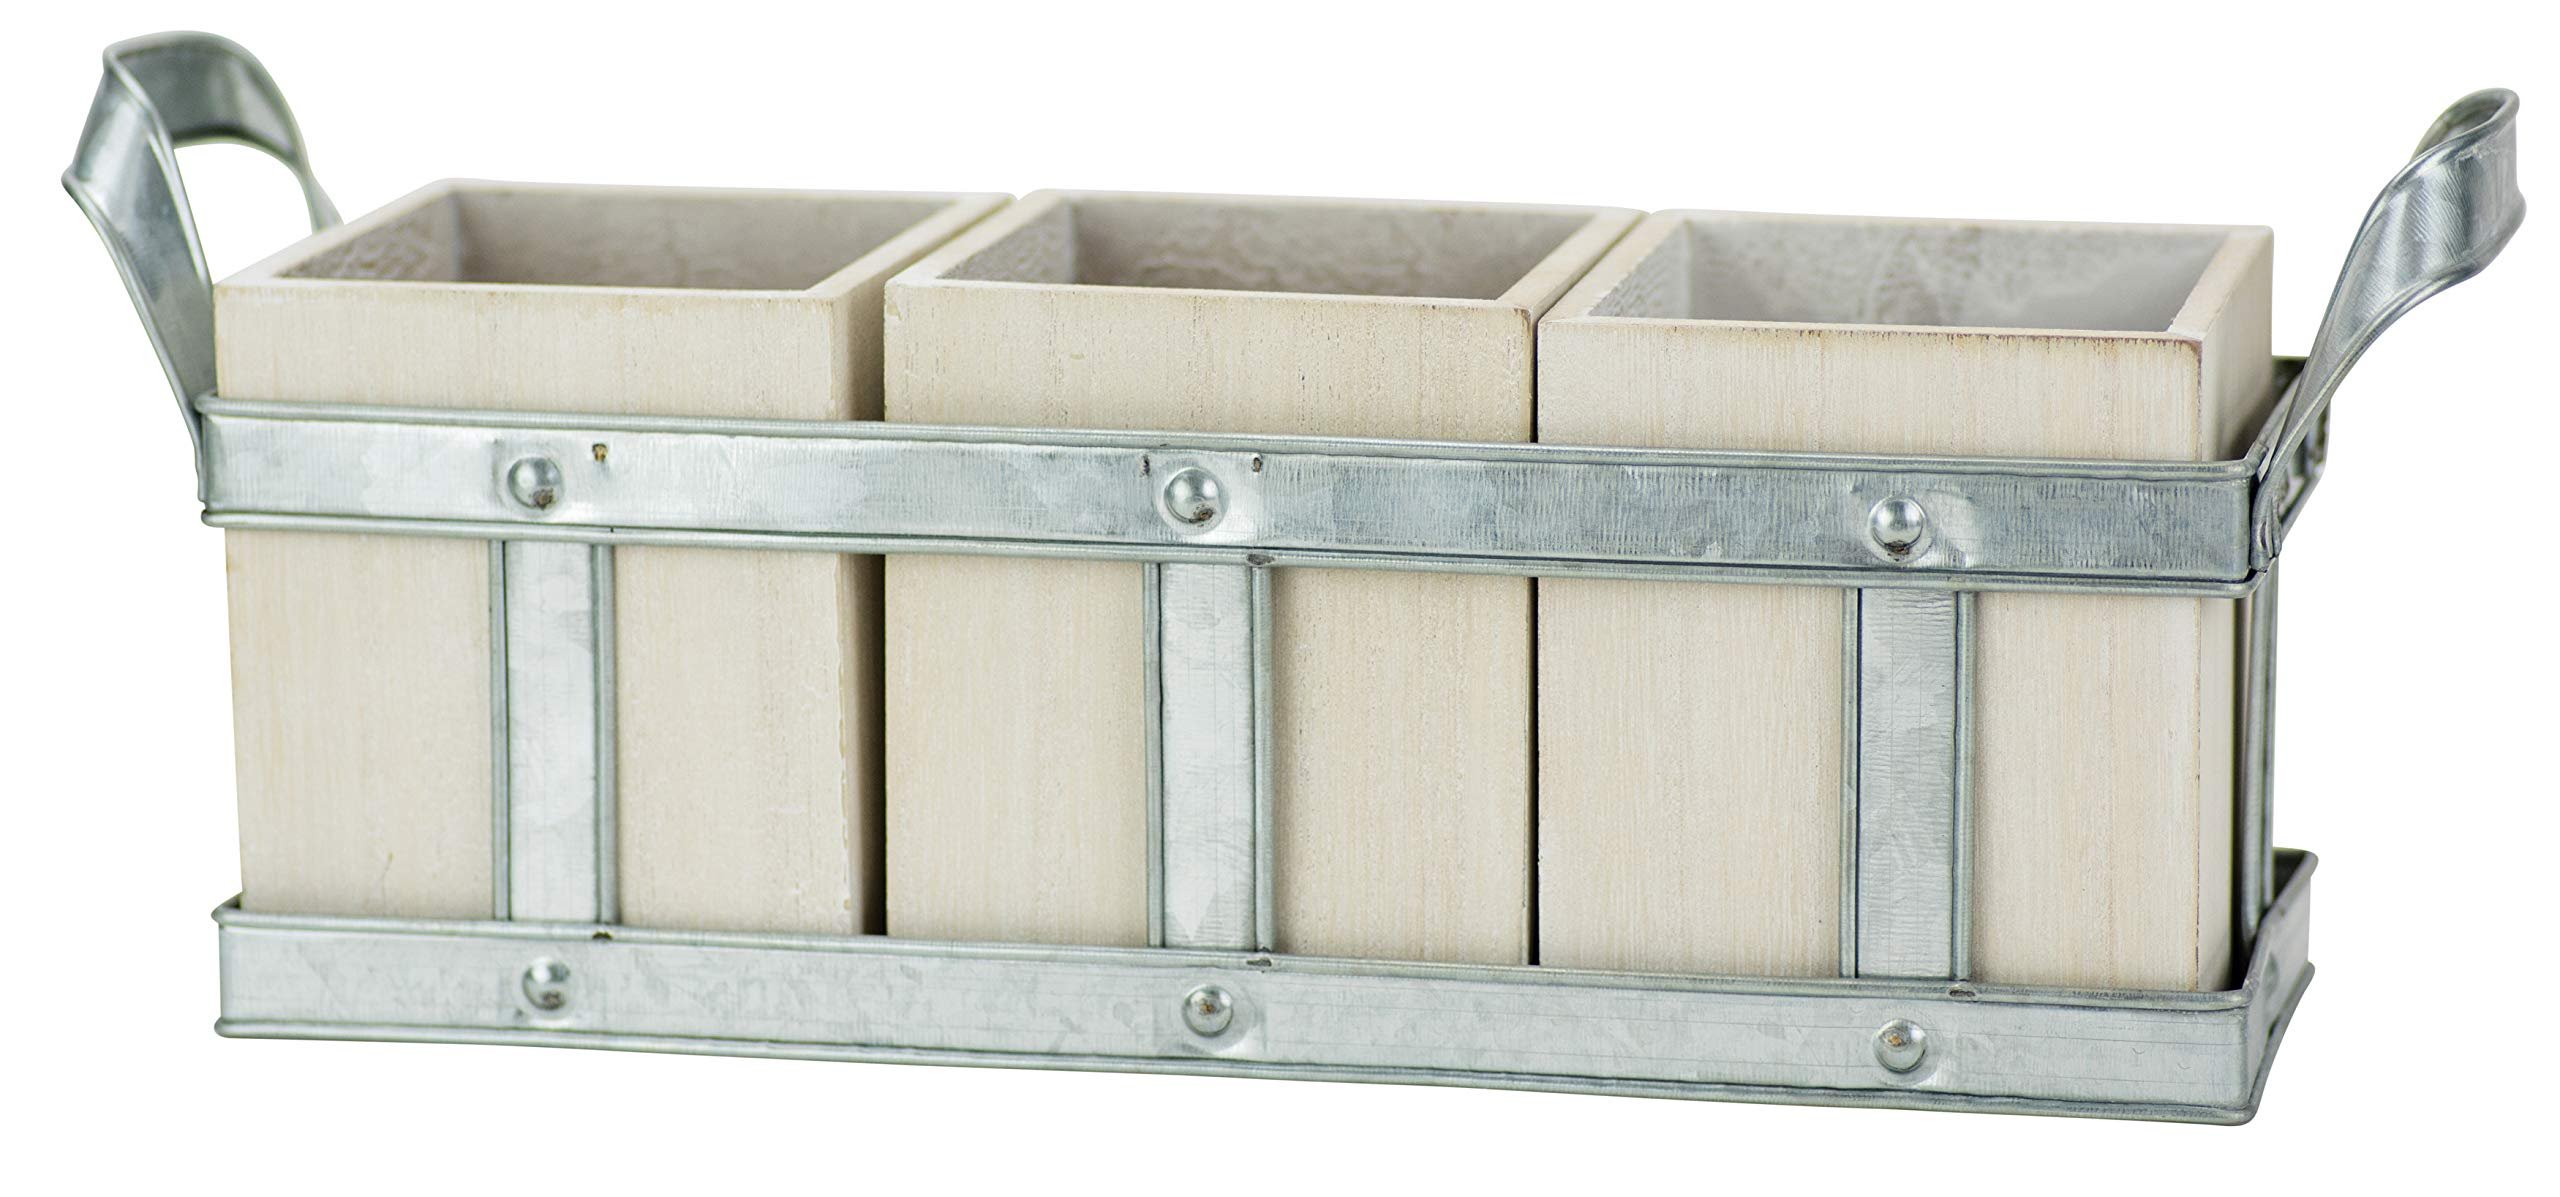 Boston Warehouse 78785 Galvanized Steel and White Washed Wood Flatware Caddy with Removable Utensil Crocks